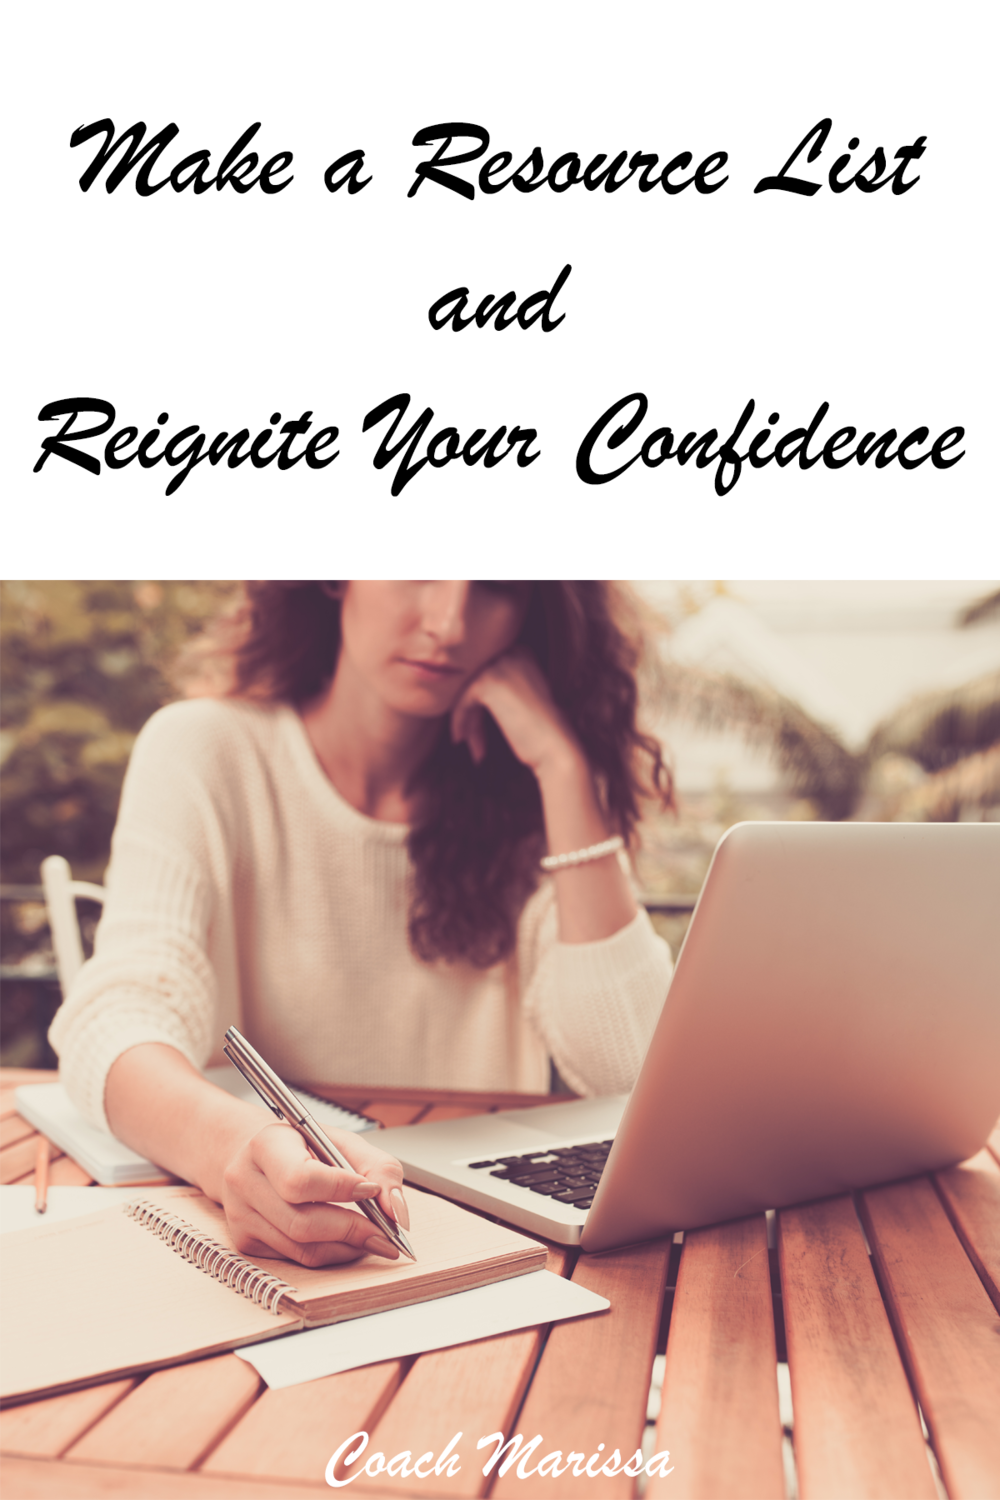 Life and career coach marissa jacobs provides this helpful tool - make a resource list to reignite your confidence in launching your business or any new pursuit!